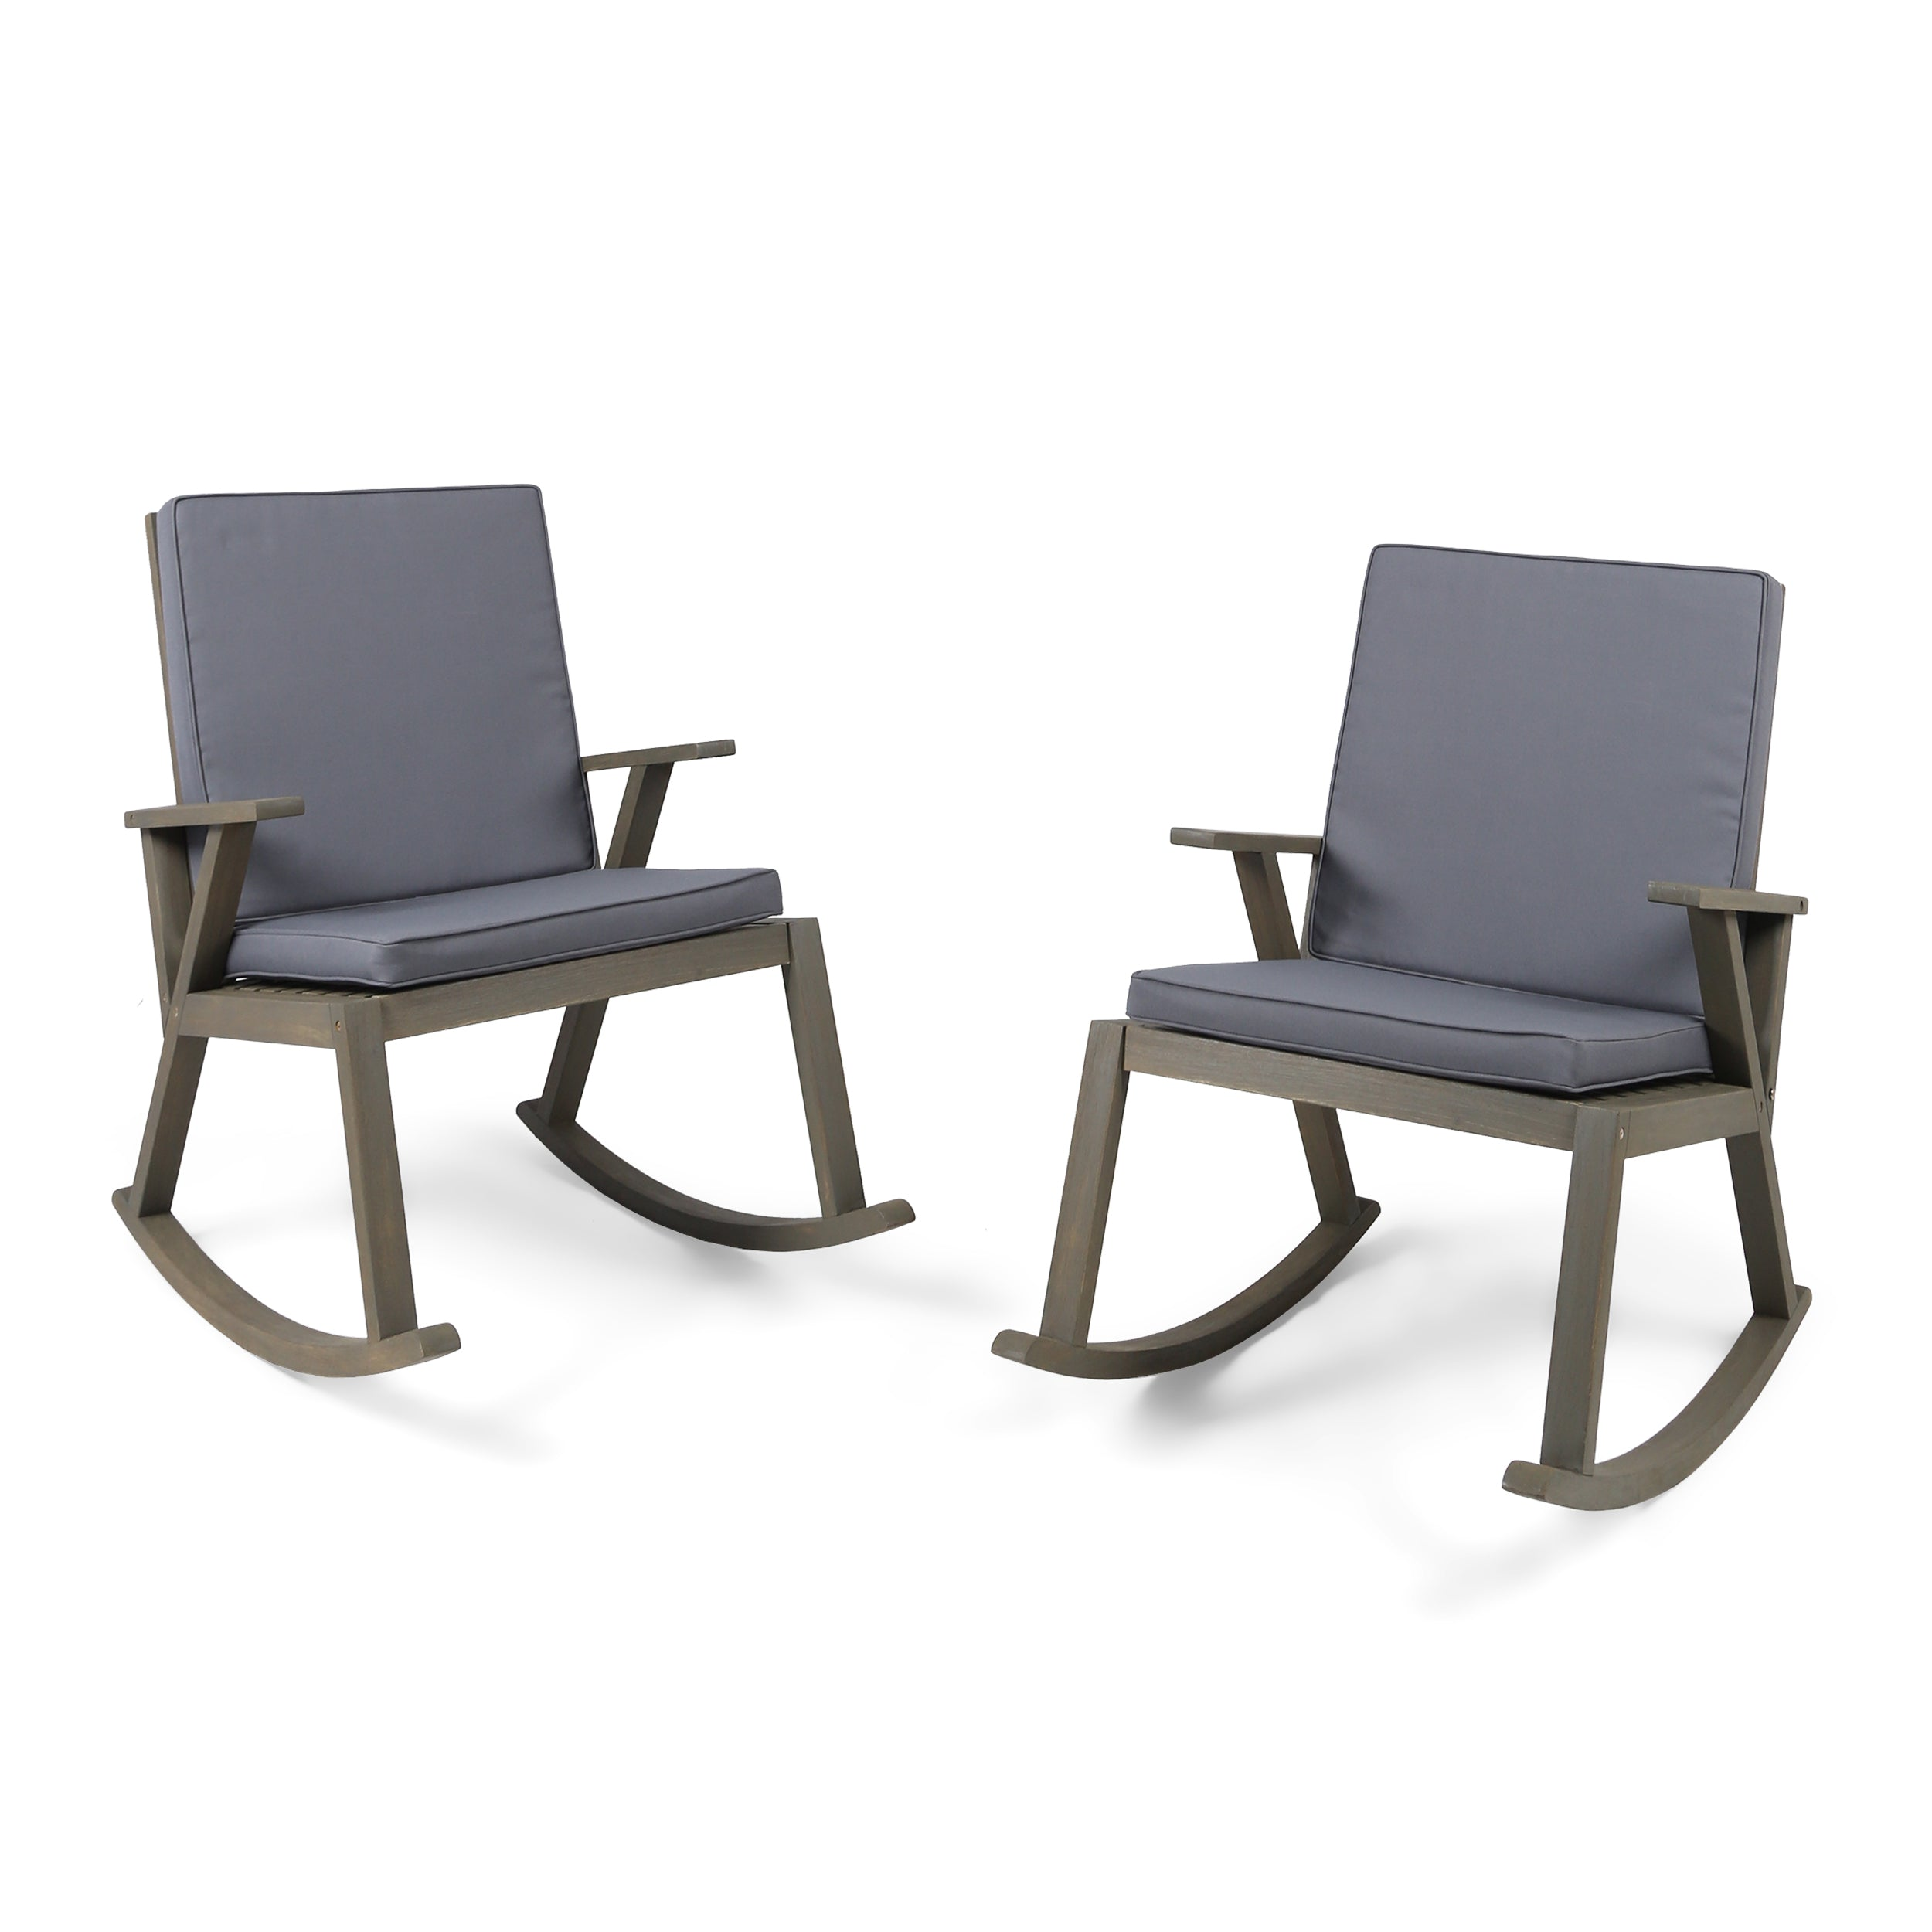 Andy Outdoor Acacia Wood Rocking Chair with Water Resistant Cushions Set of 2 Teak